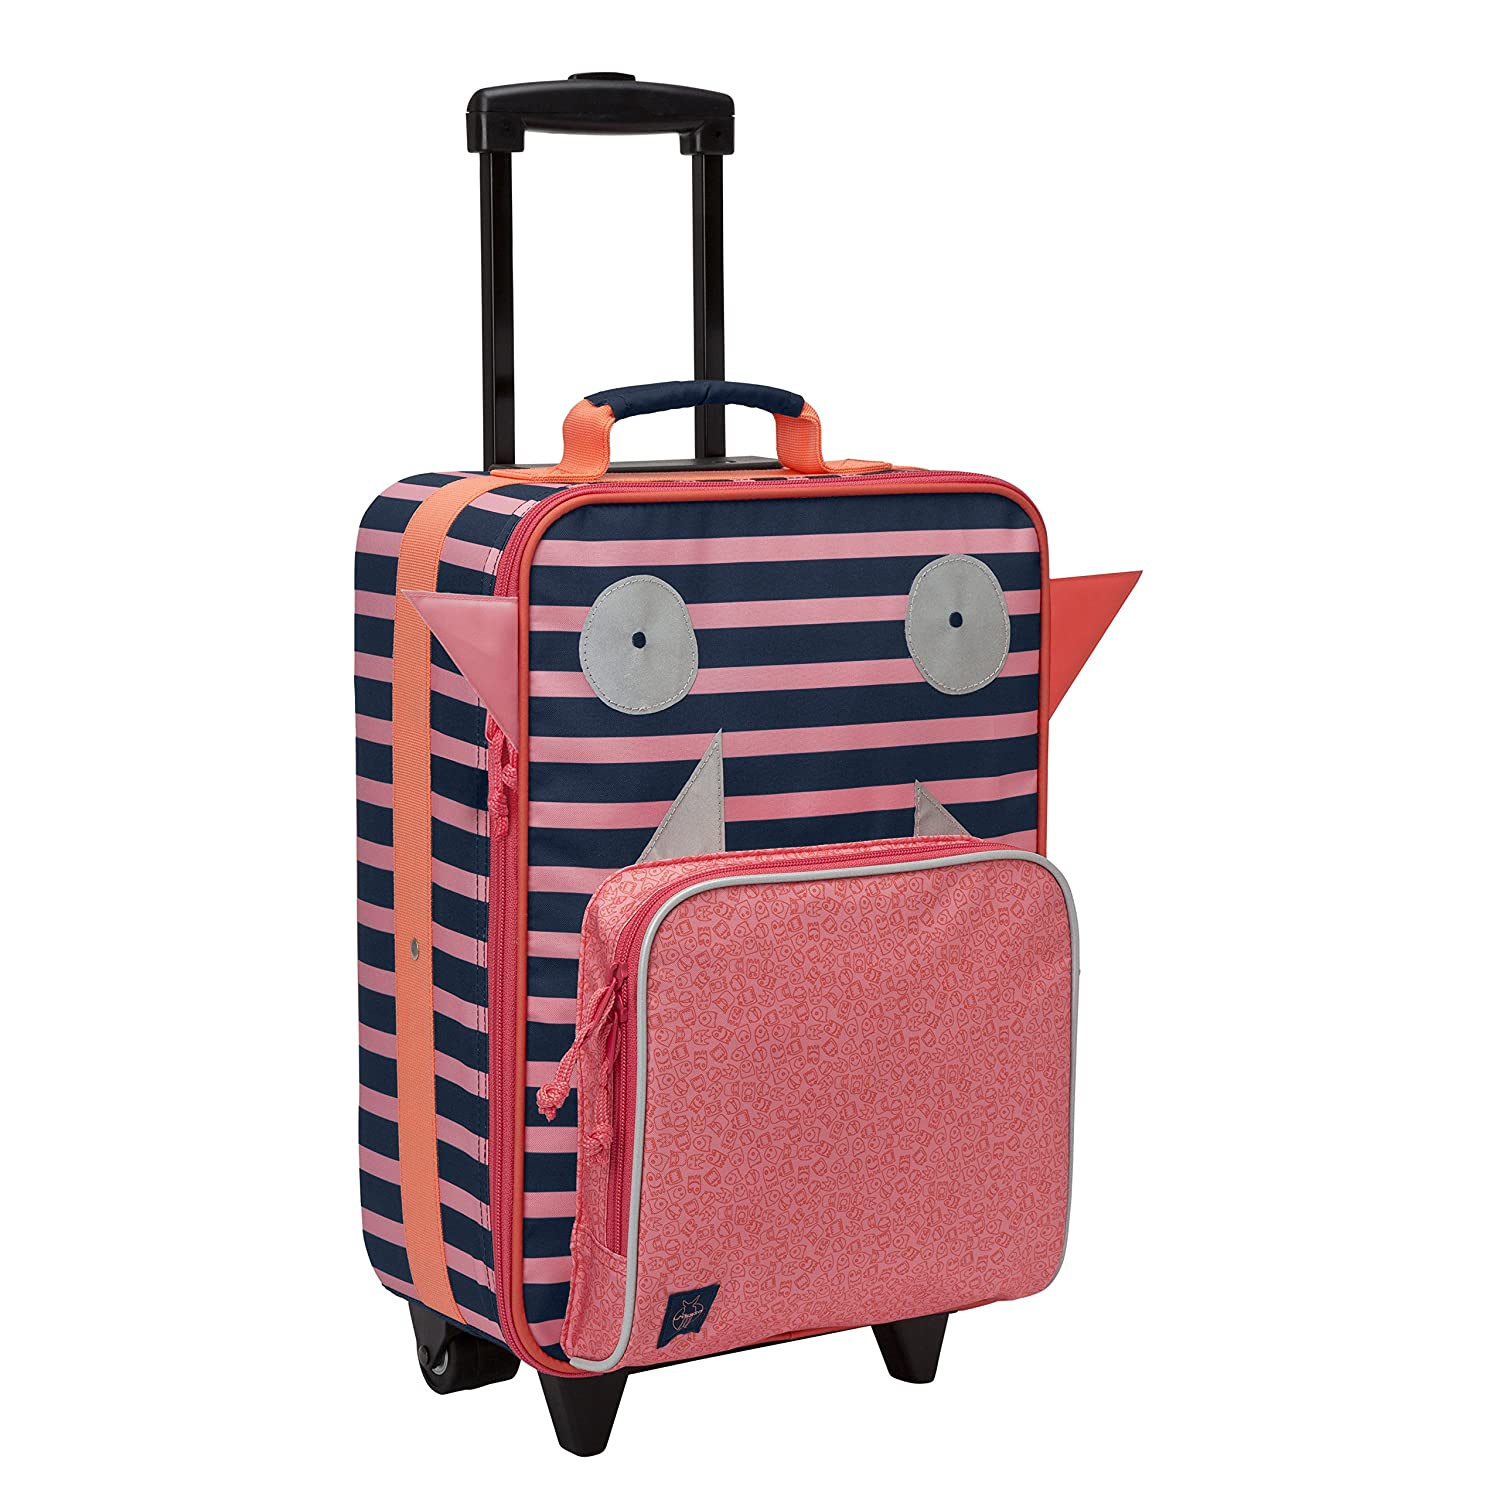 Lassig Kids Travel Trolley Kids Suitcase, Mad Mabel LMTR1192